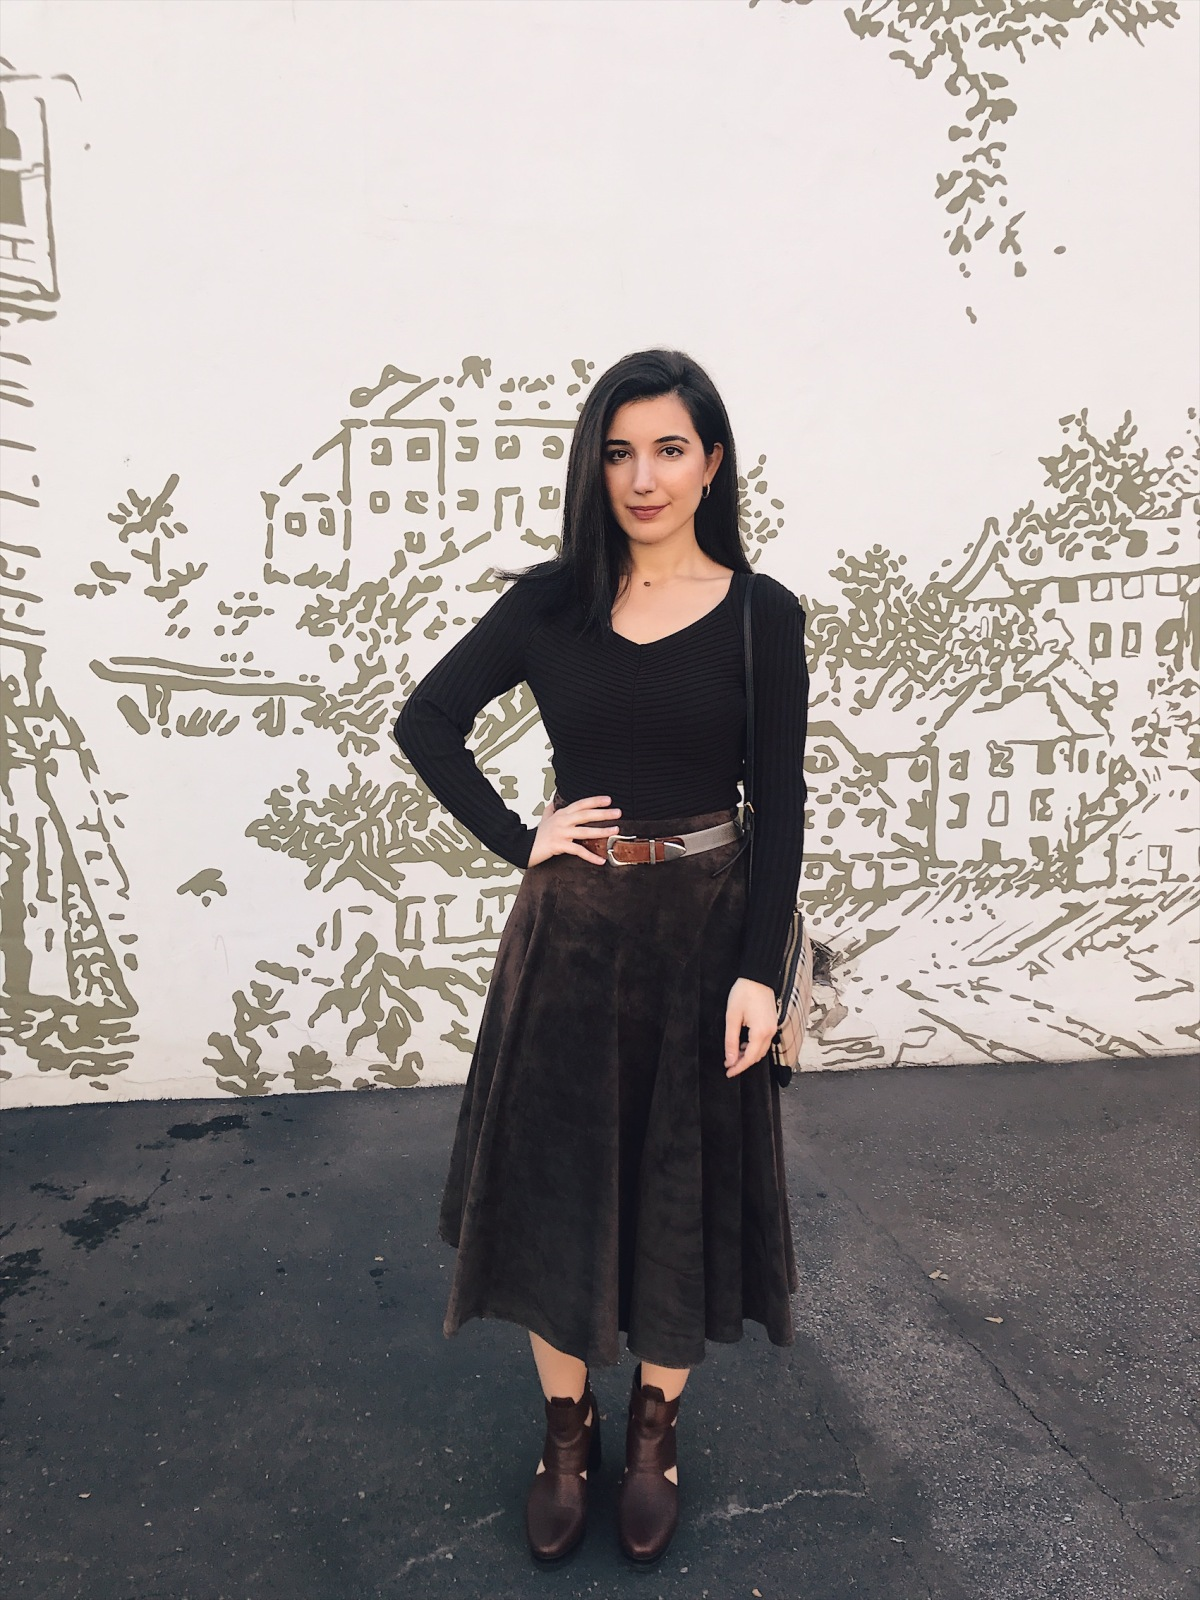 Fashion blogger wearing Monochromatic outfit